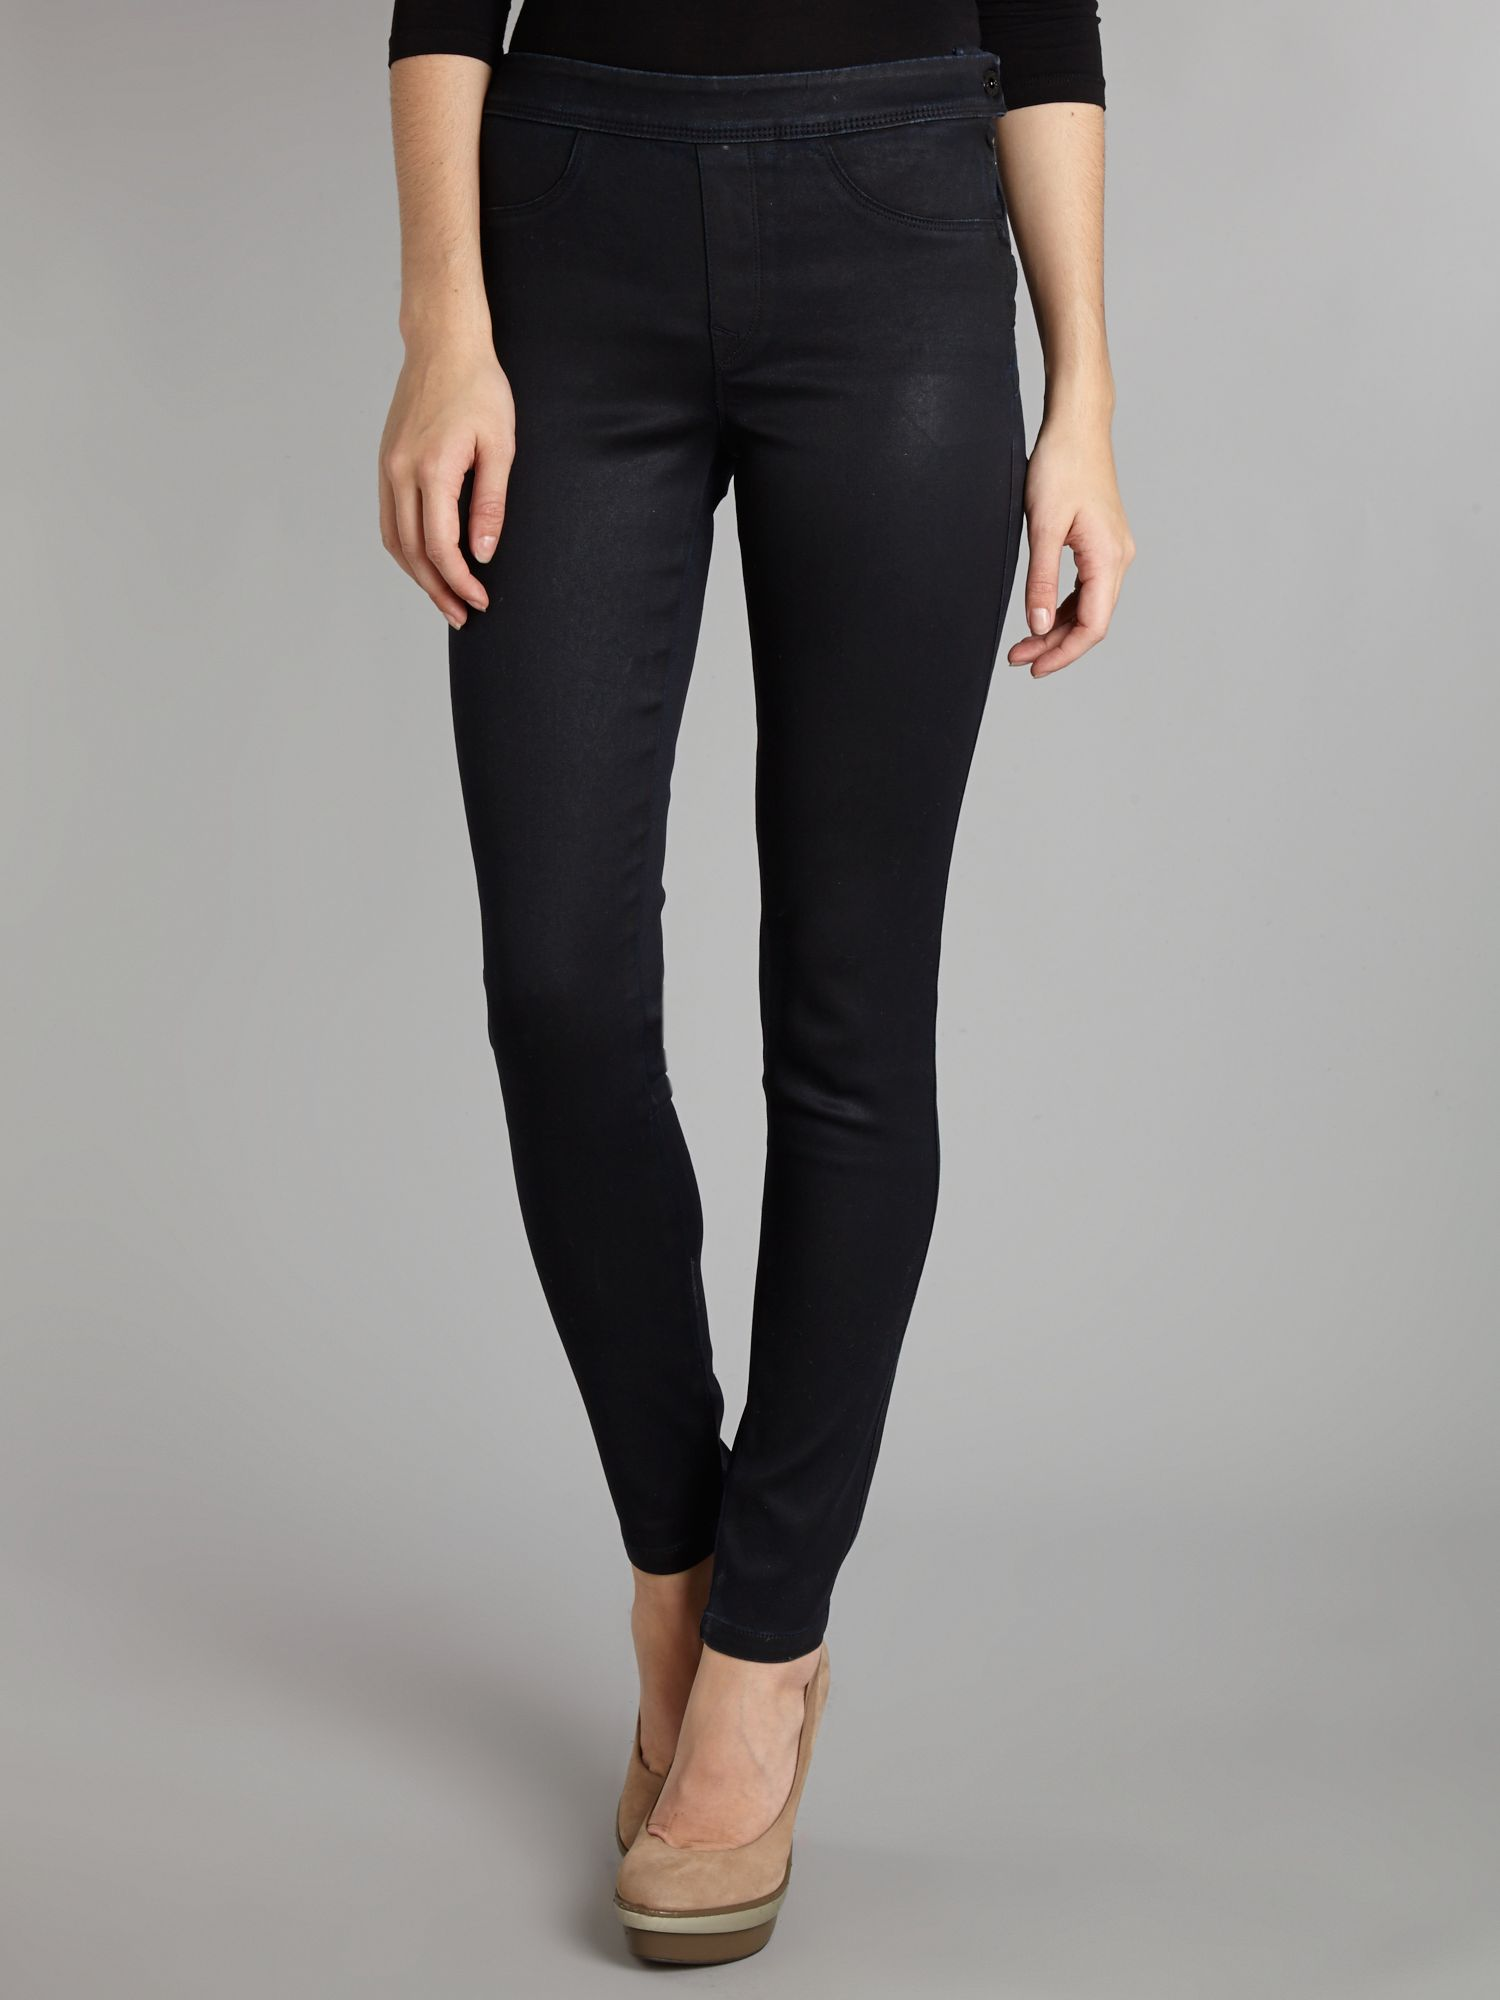 Secret Push-In skinny coated jeans